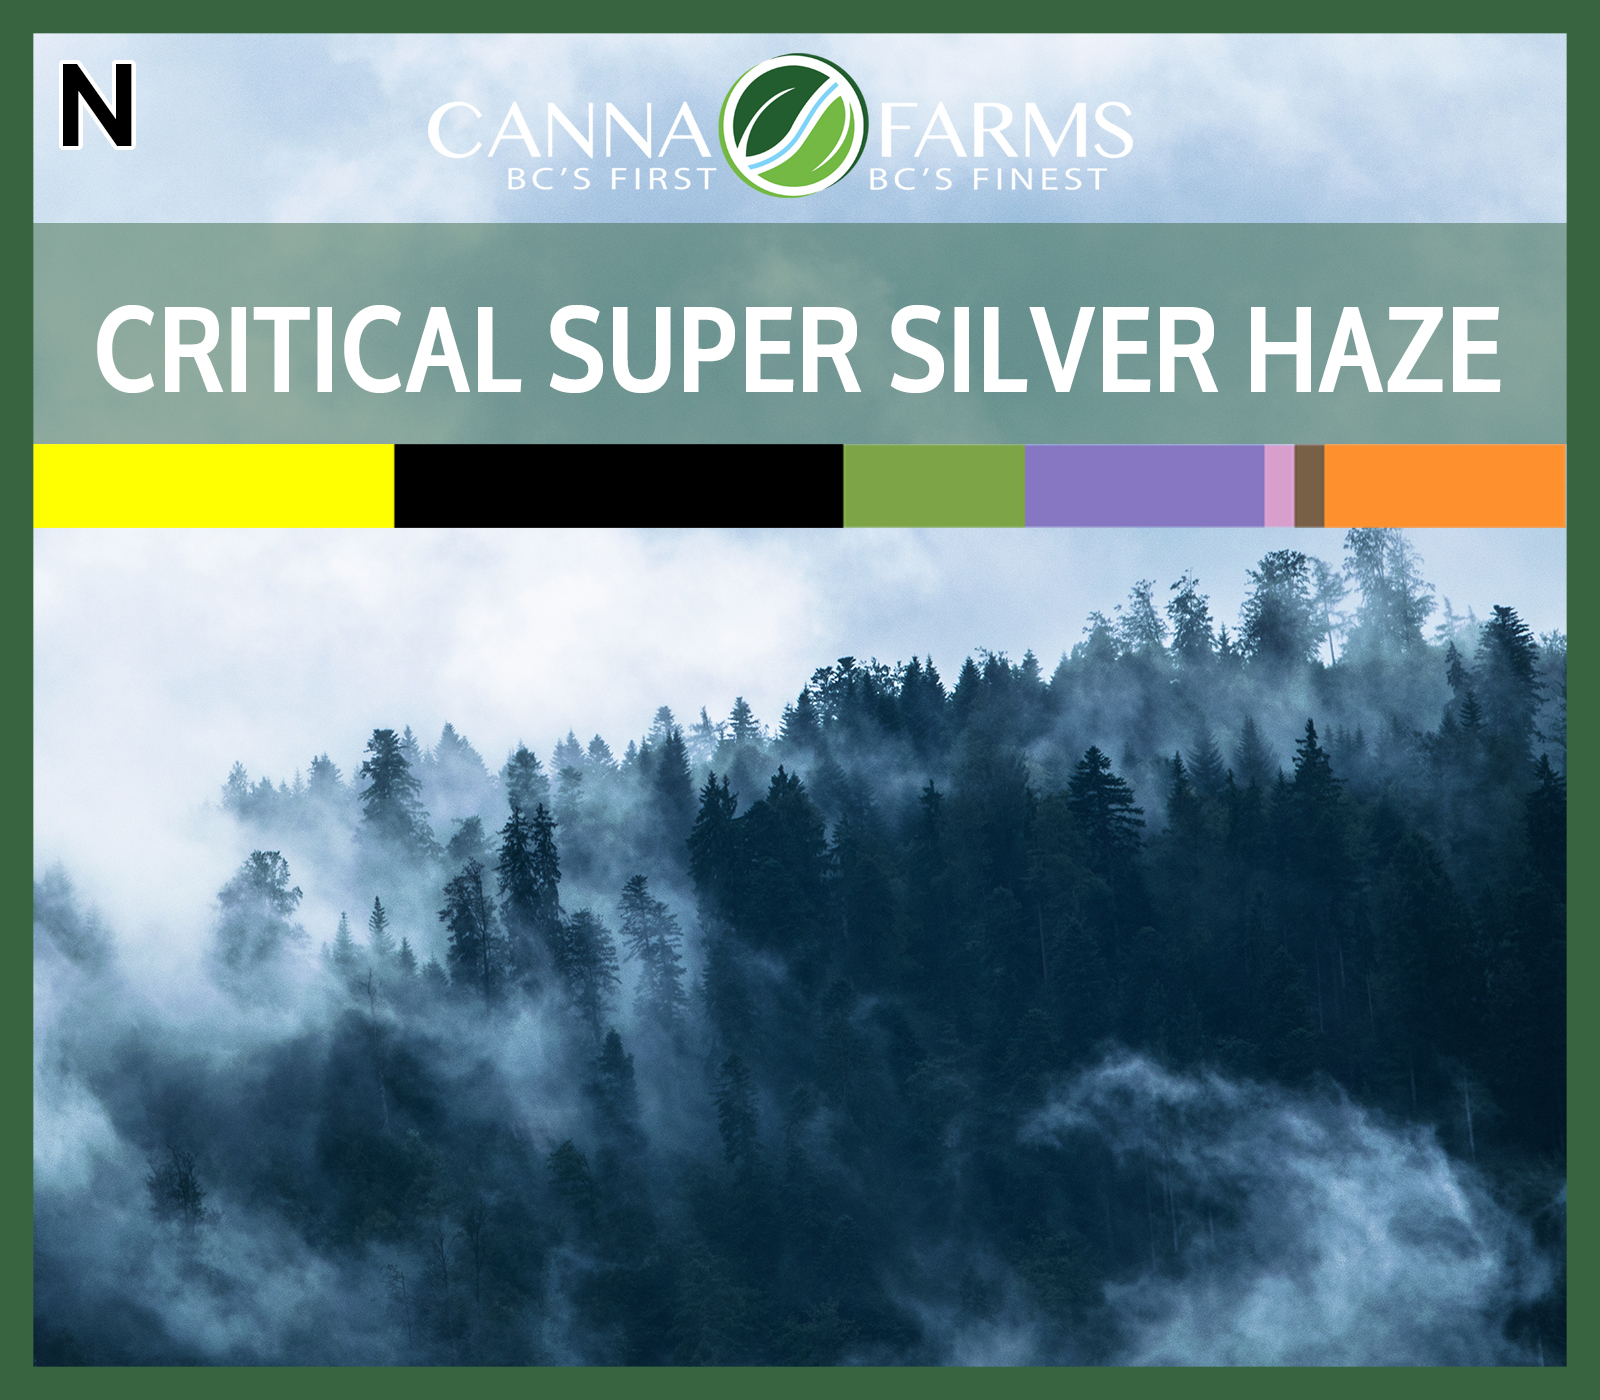 CF-CRITICAL SUPER SILVER HAZE.jpg